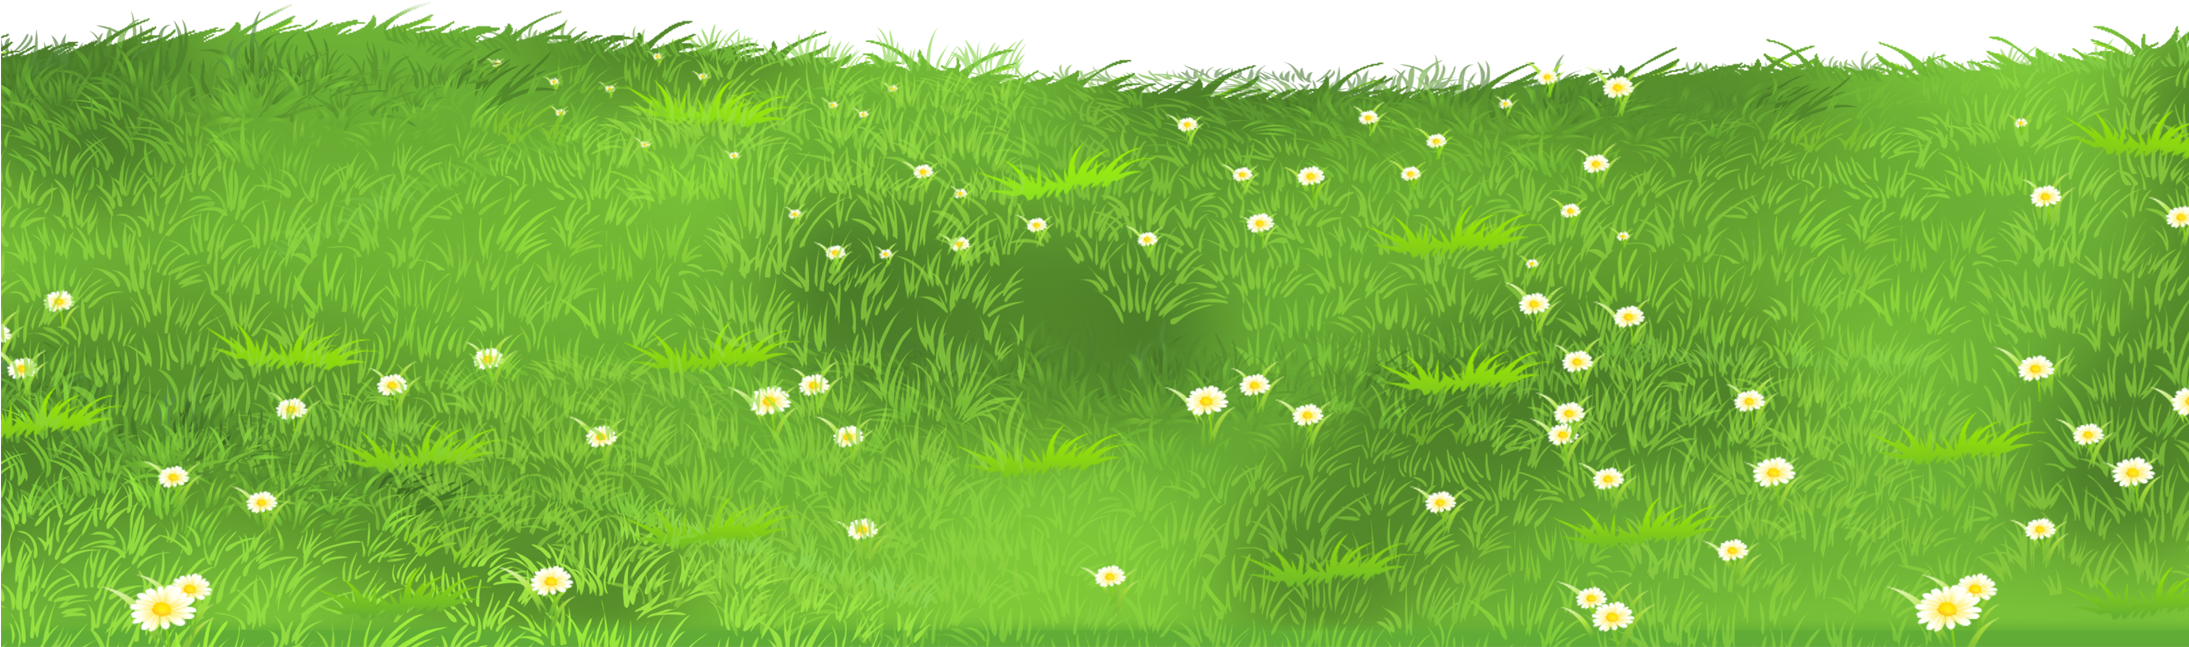 Ground clipart clear background grass. Download with daisies png